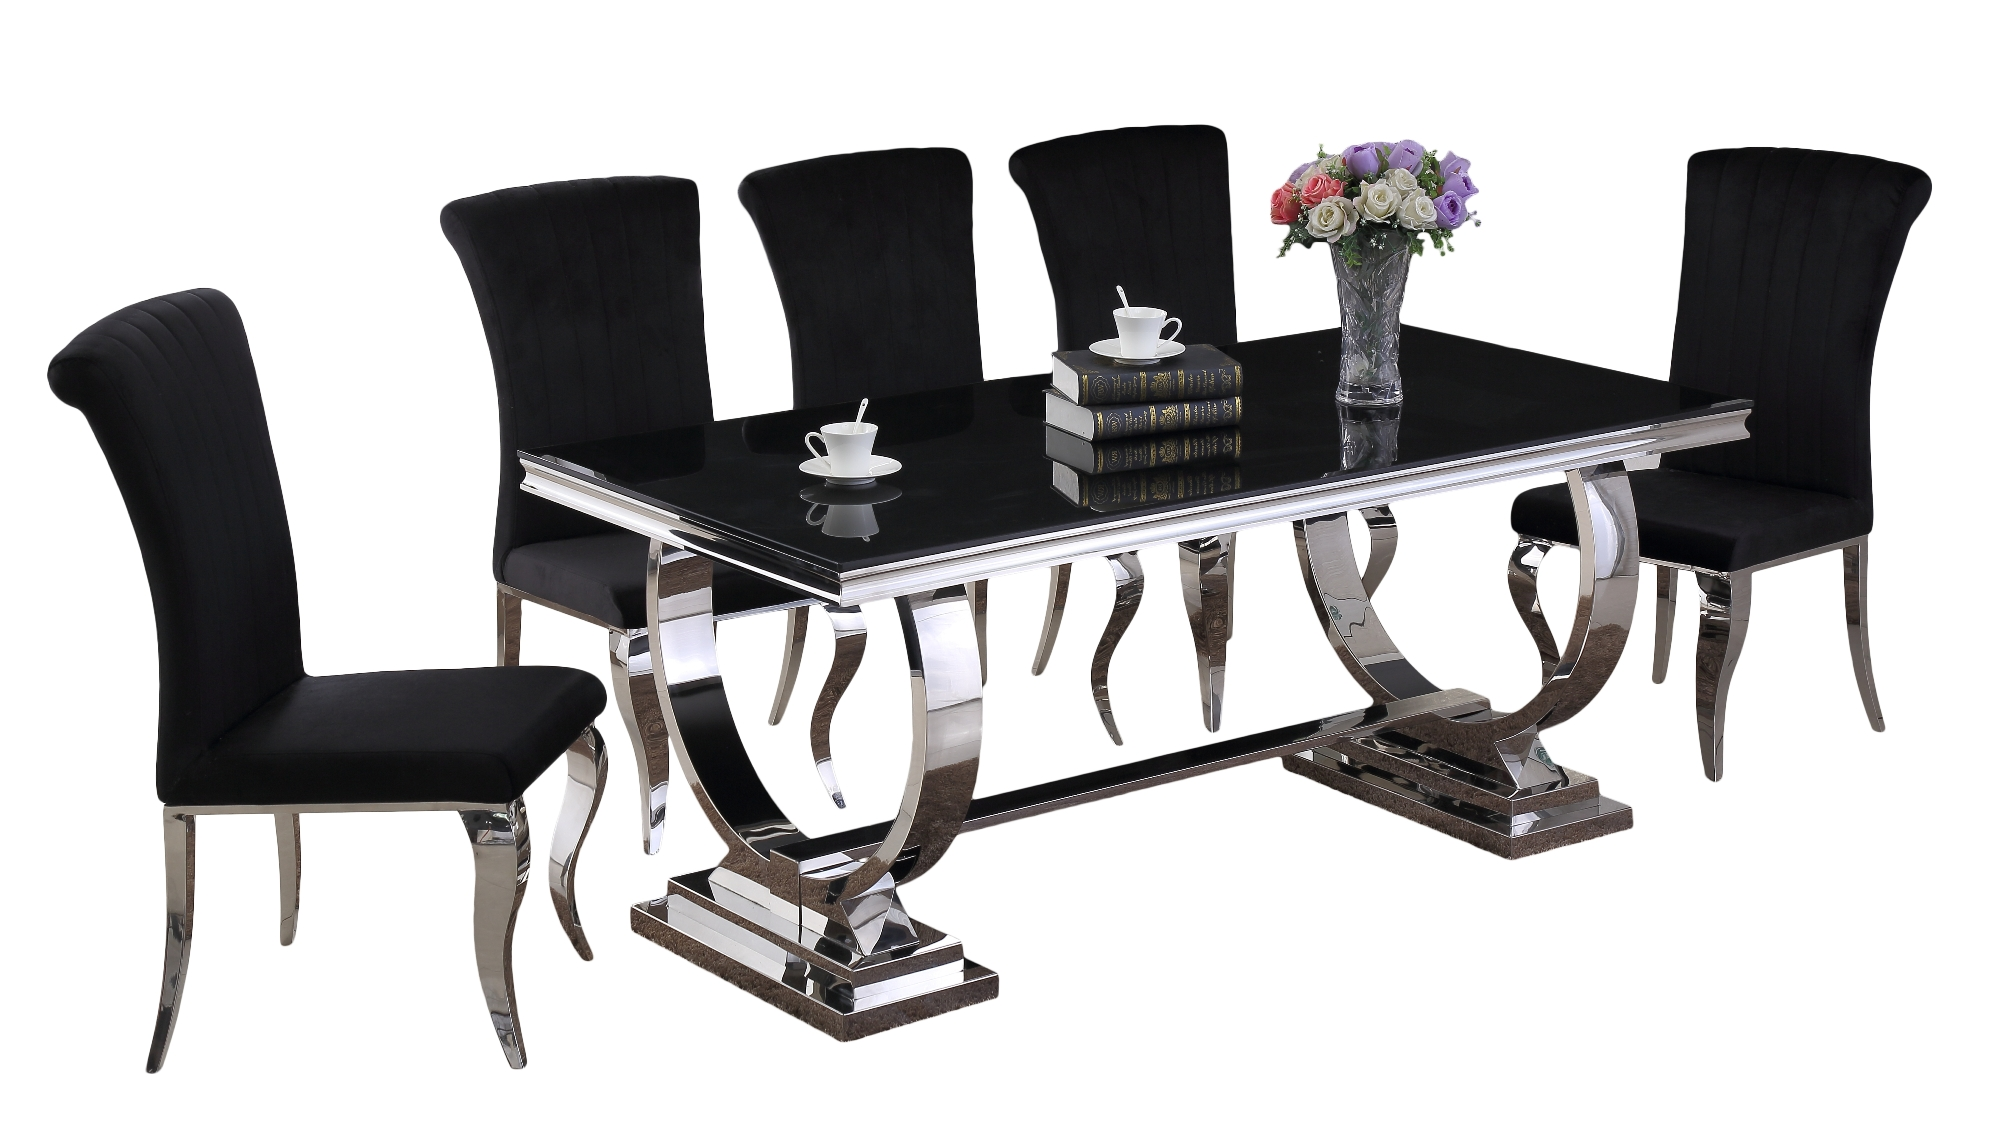 Venice Black Dining Table DT-813BL & Liyana Black Chair CH-891BL (White Background)